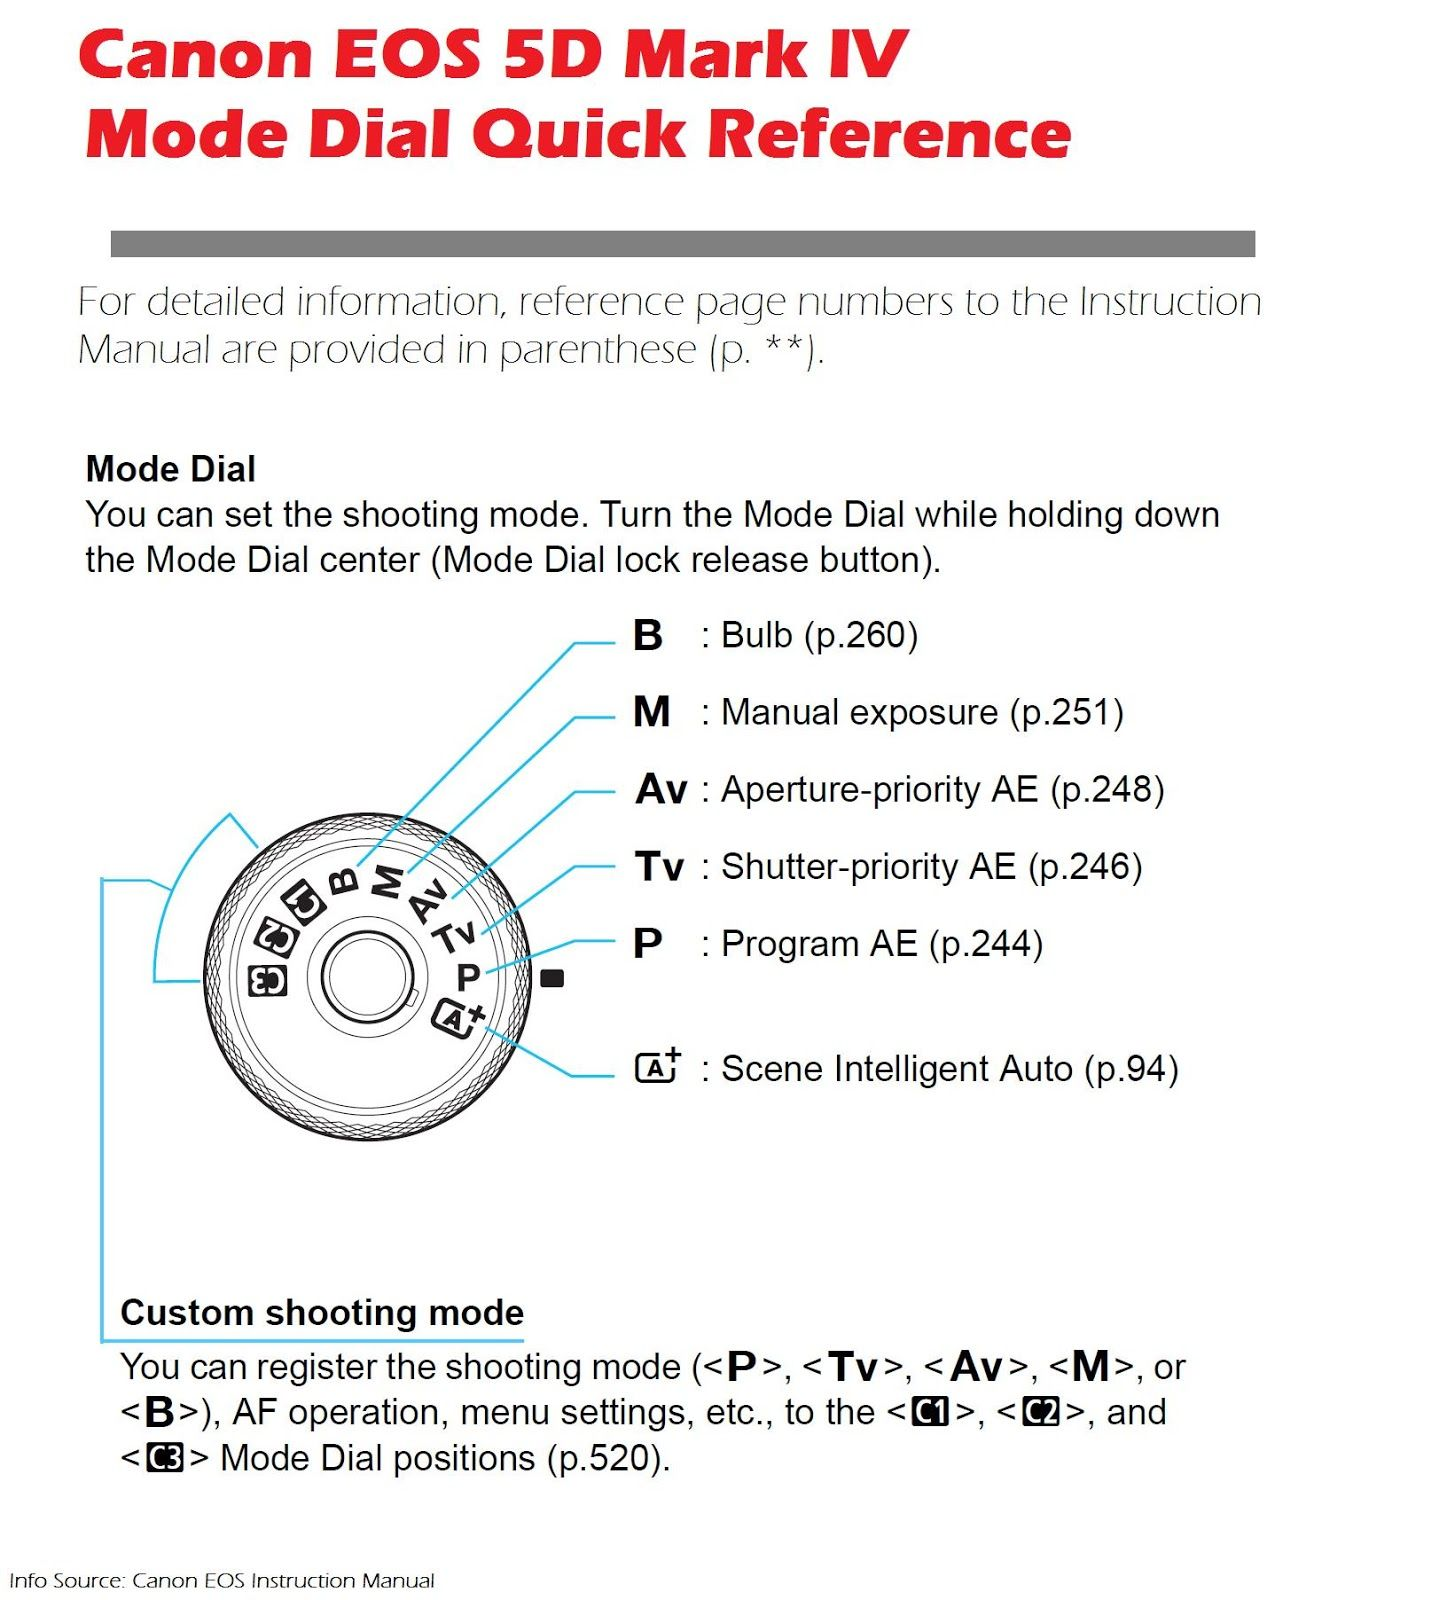 Canon EOS 5D Mark IV Camera Mode Dial Quick Reference  There's more